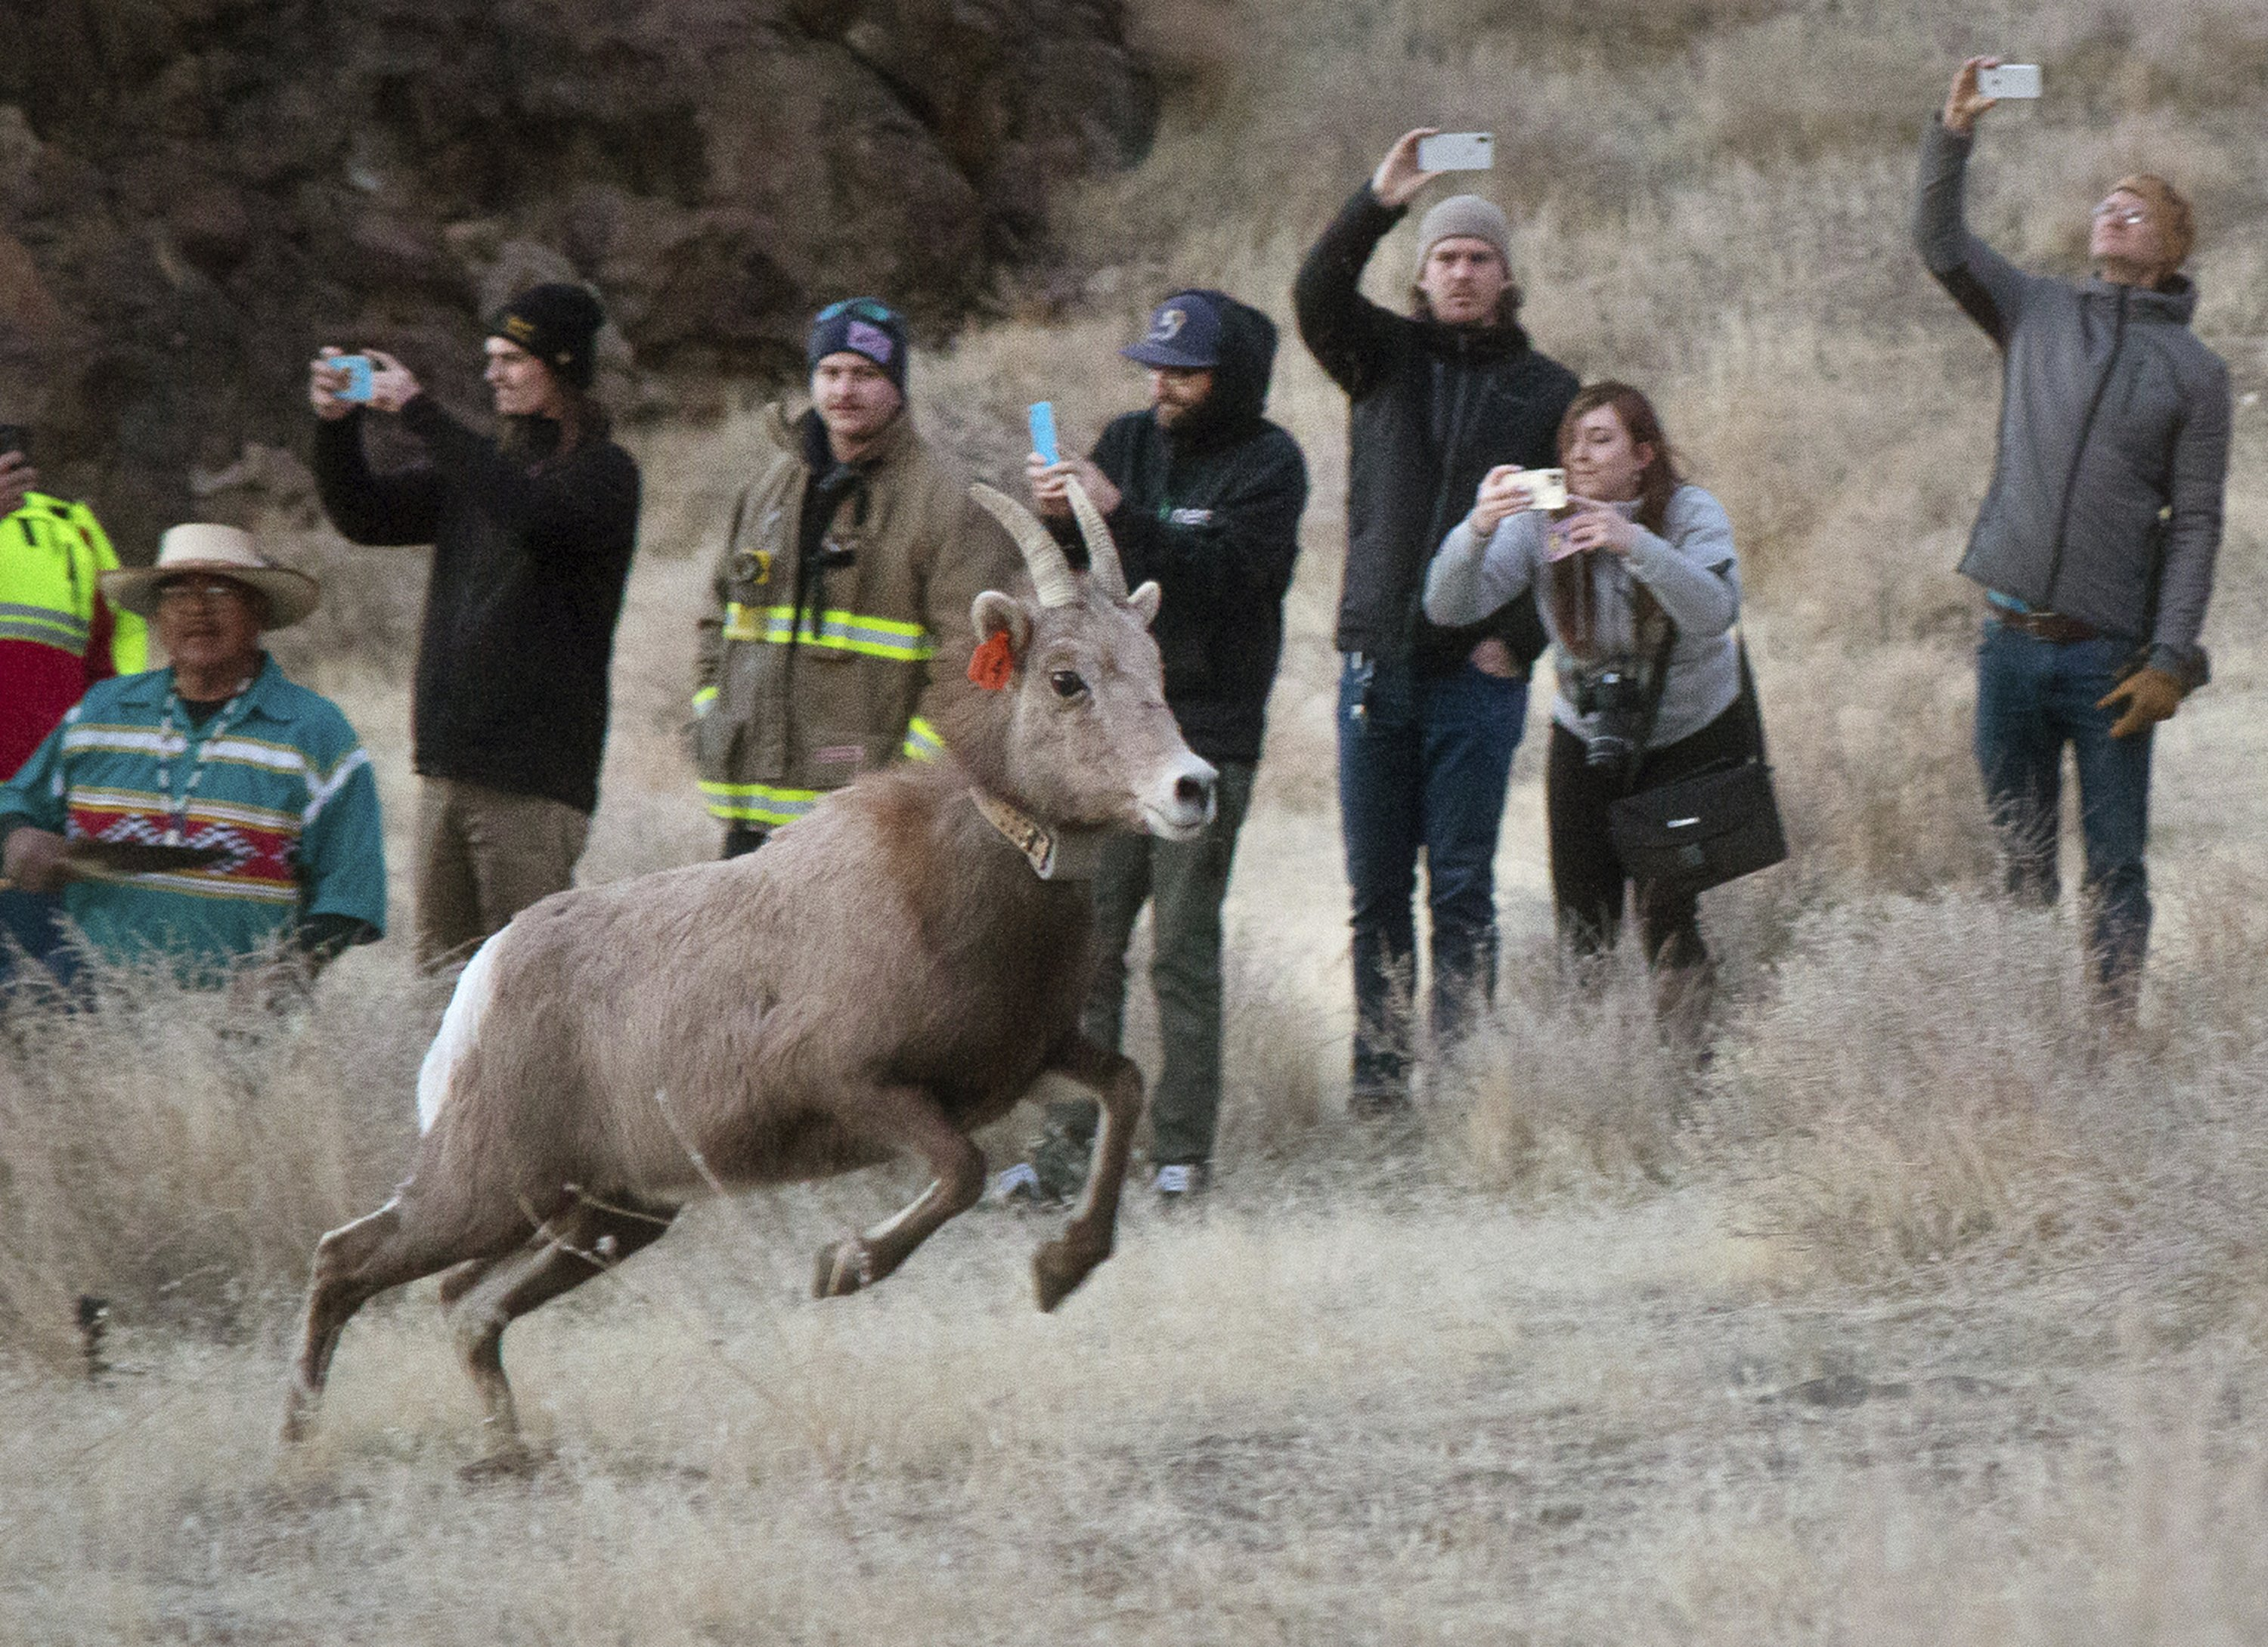 Bighorn Sheep Return To Nevada Lake After Nearly 100 Years